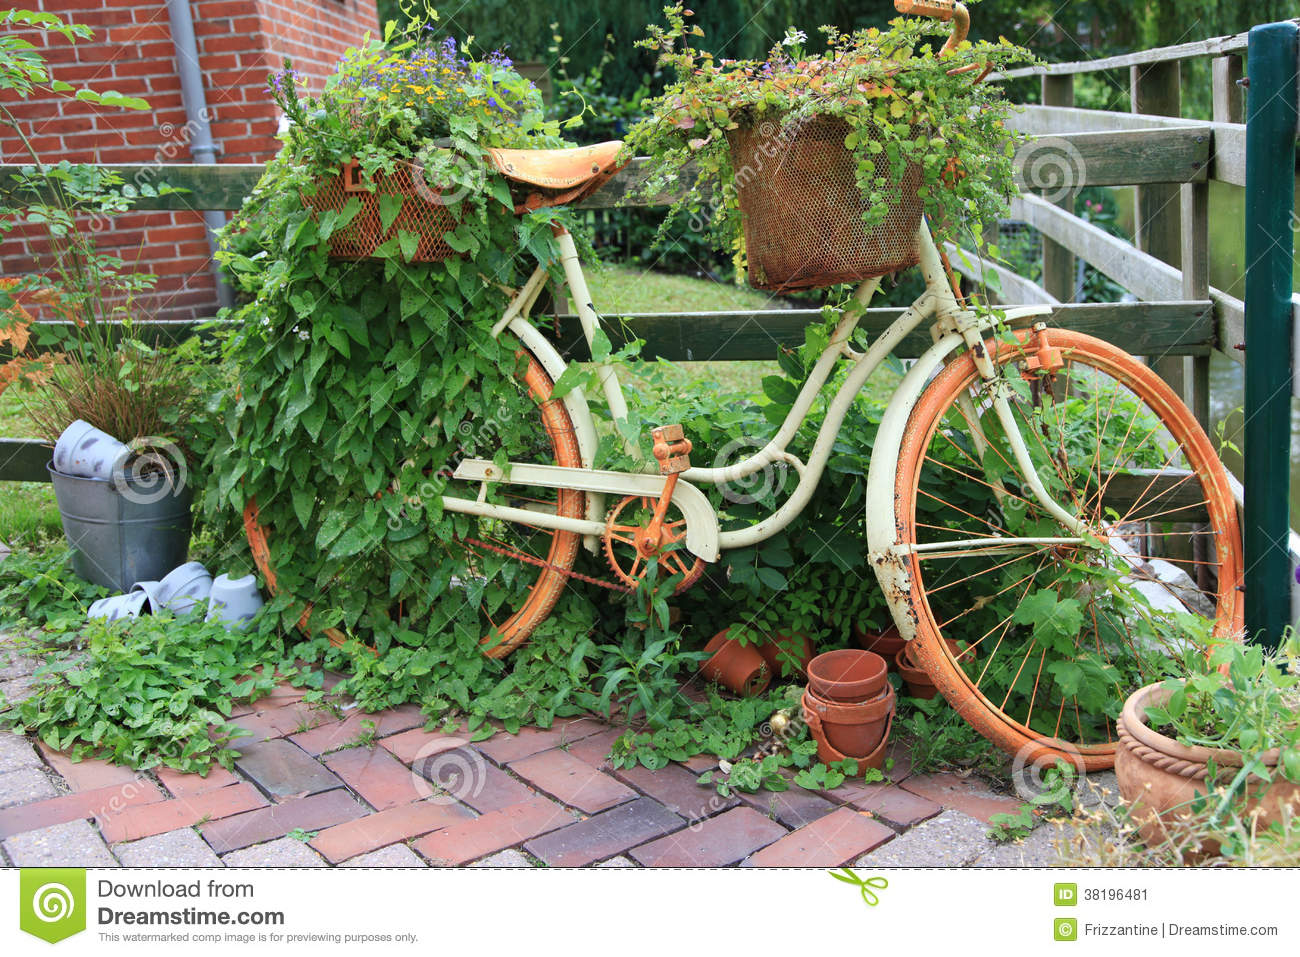 garden decoration with a old bike stock image image of up close 38196481. Black Bedroom Furniture Sets. Home Design Ideas